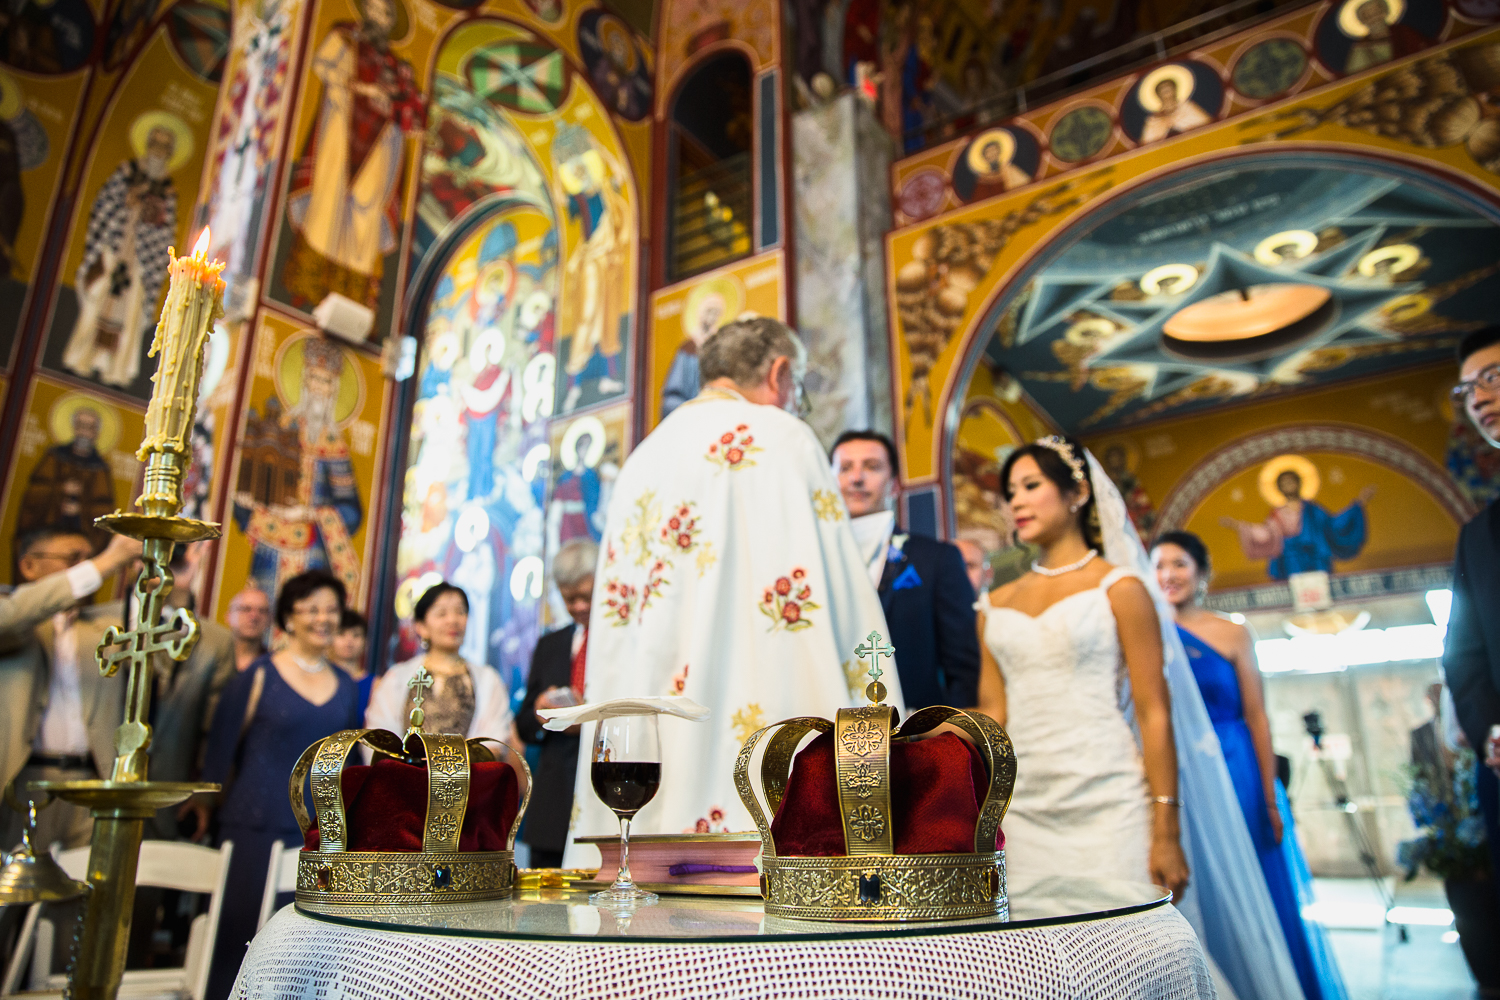 St-Sava-Serbian-Orthodox-Church-Wedding-Mississauga-Ontario-Derrel-Ho-Shing-Photography-0017.jpg